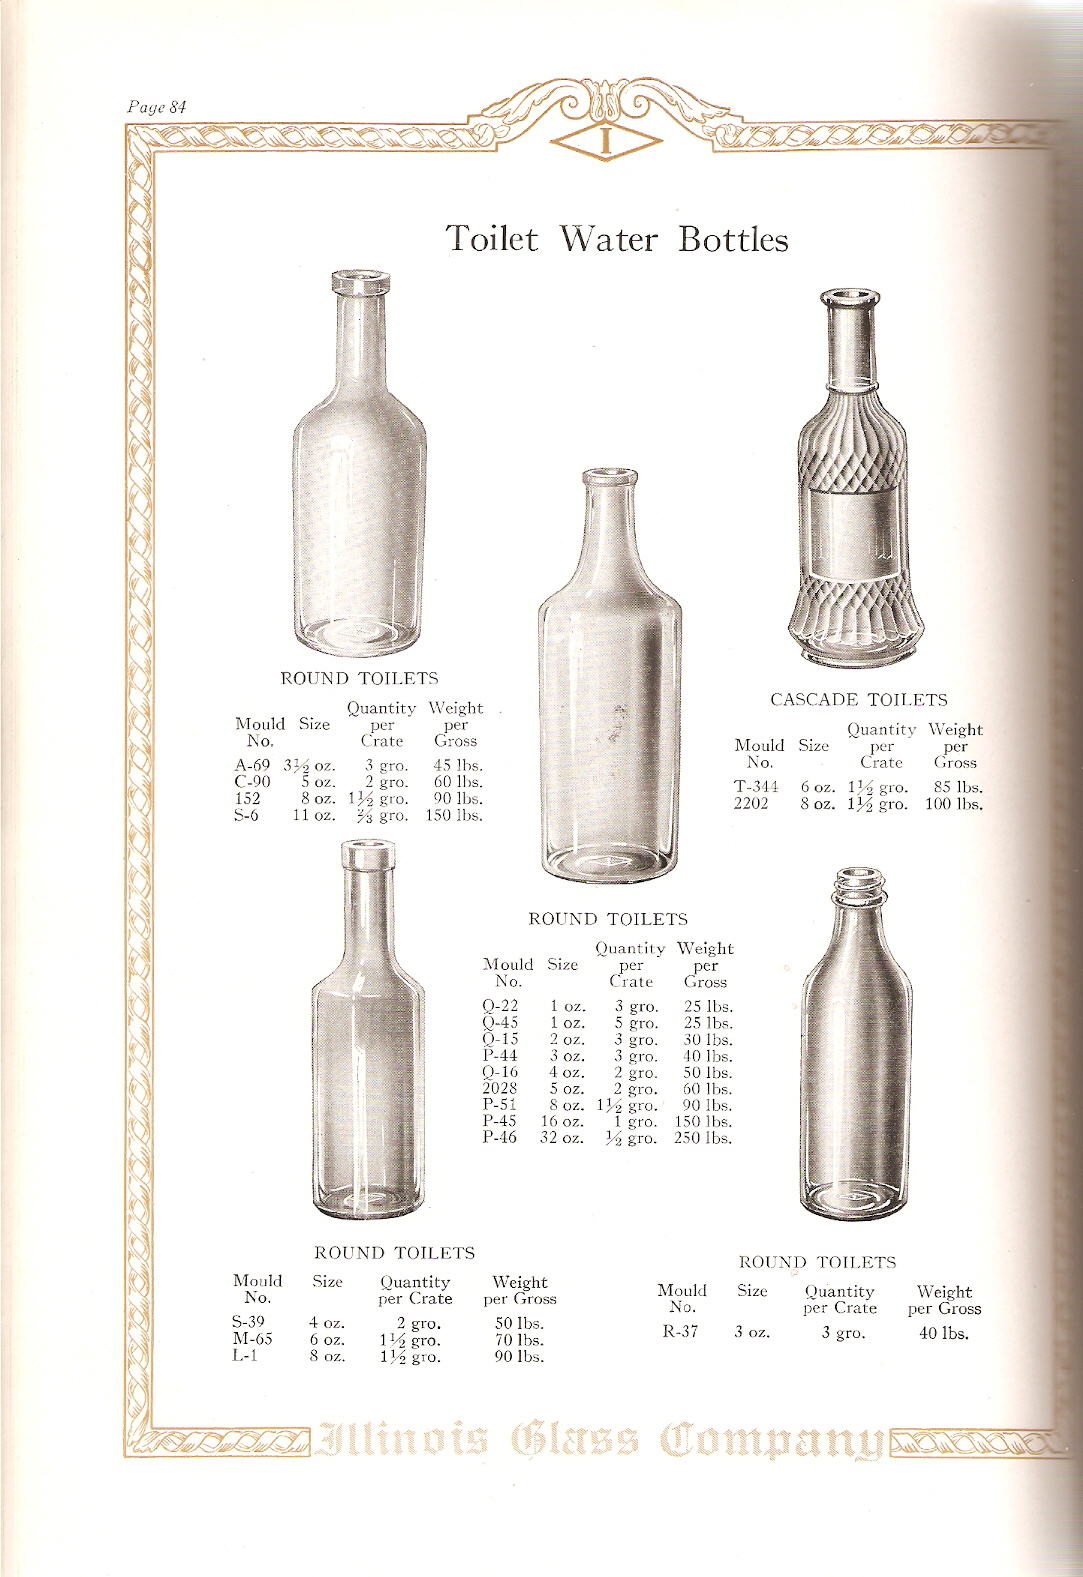 Illinois glass co 1926 catalog page 84 toilet water bottles biocorpaavc Gallery